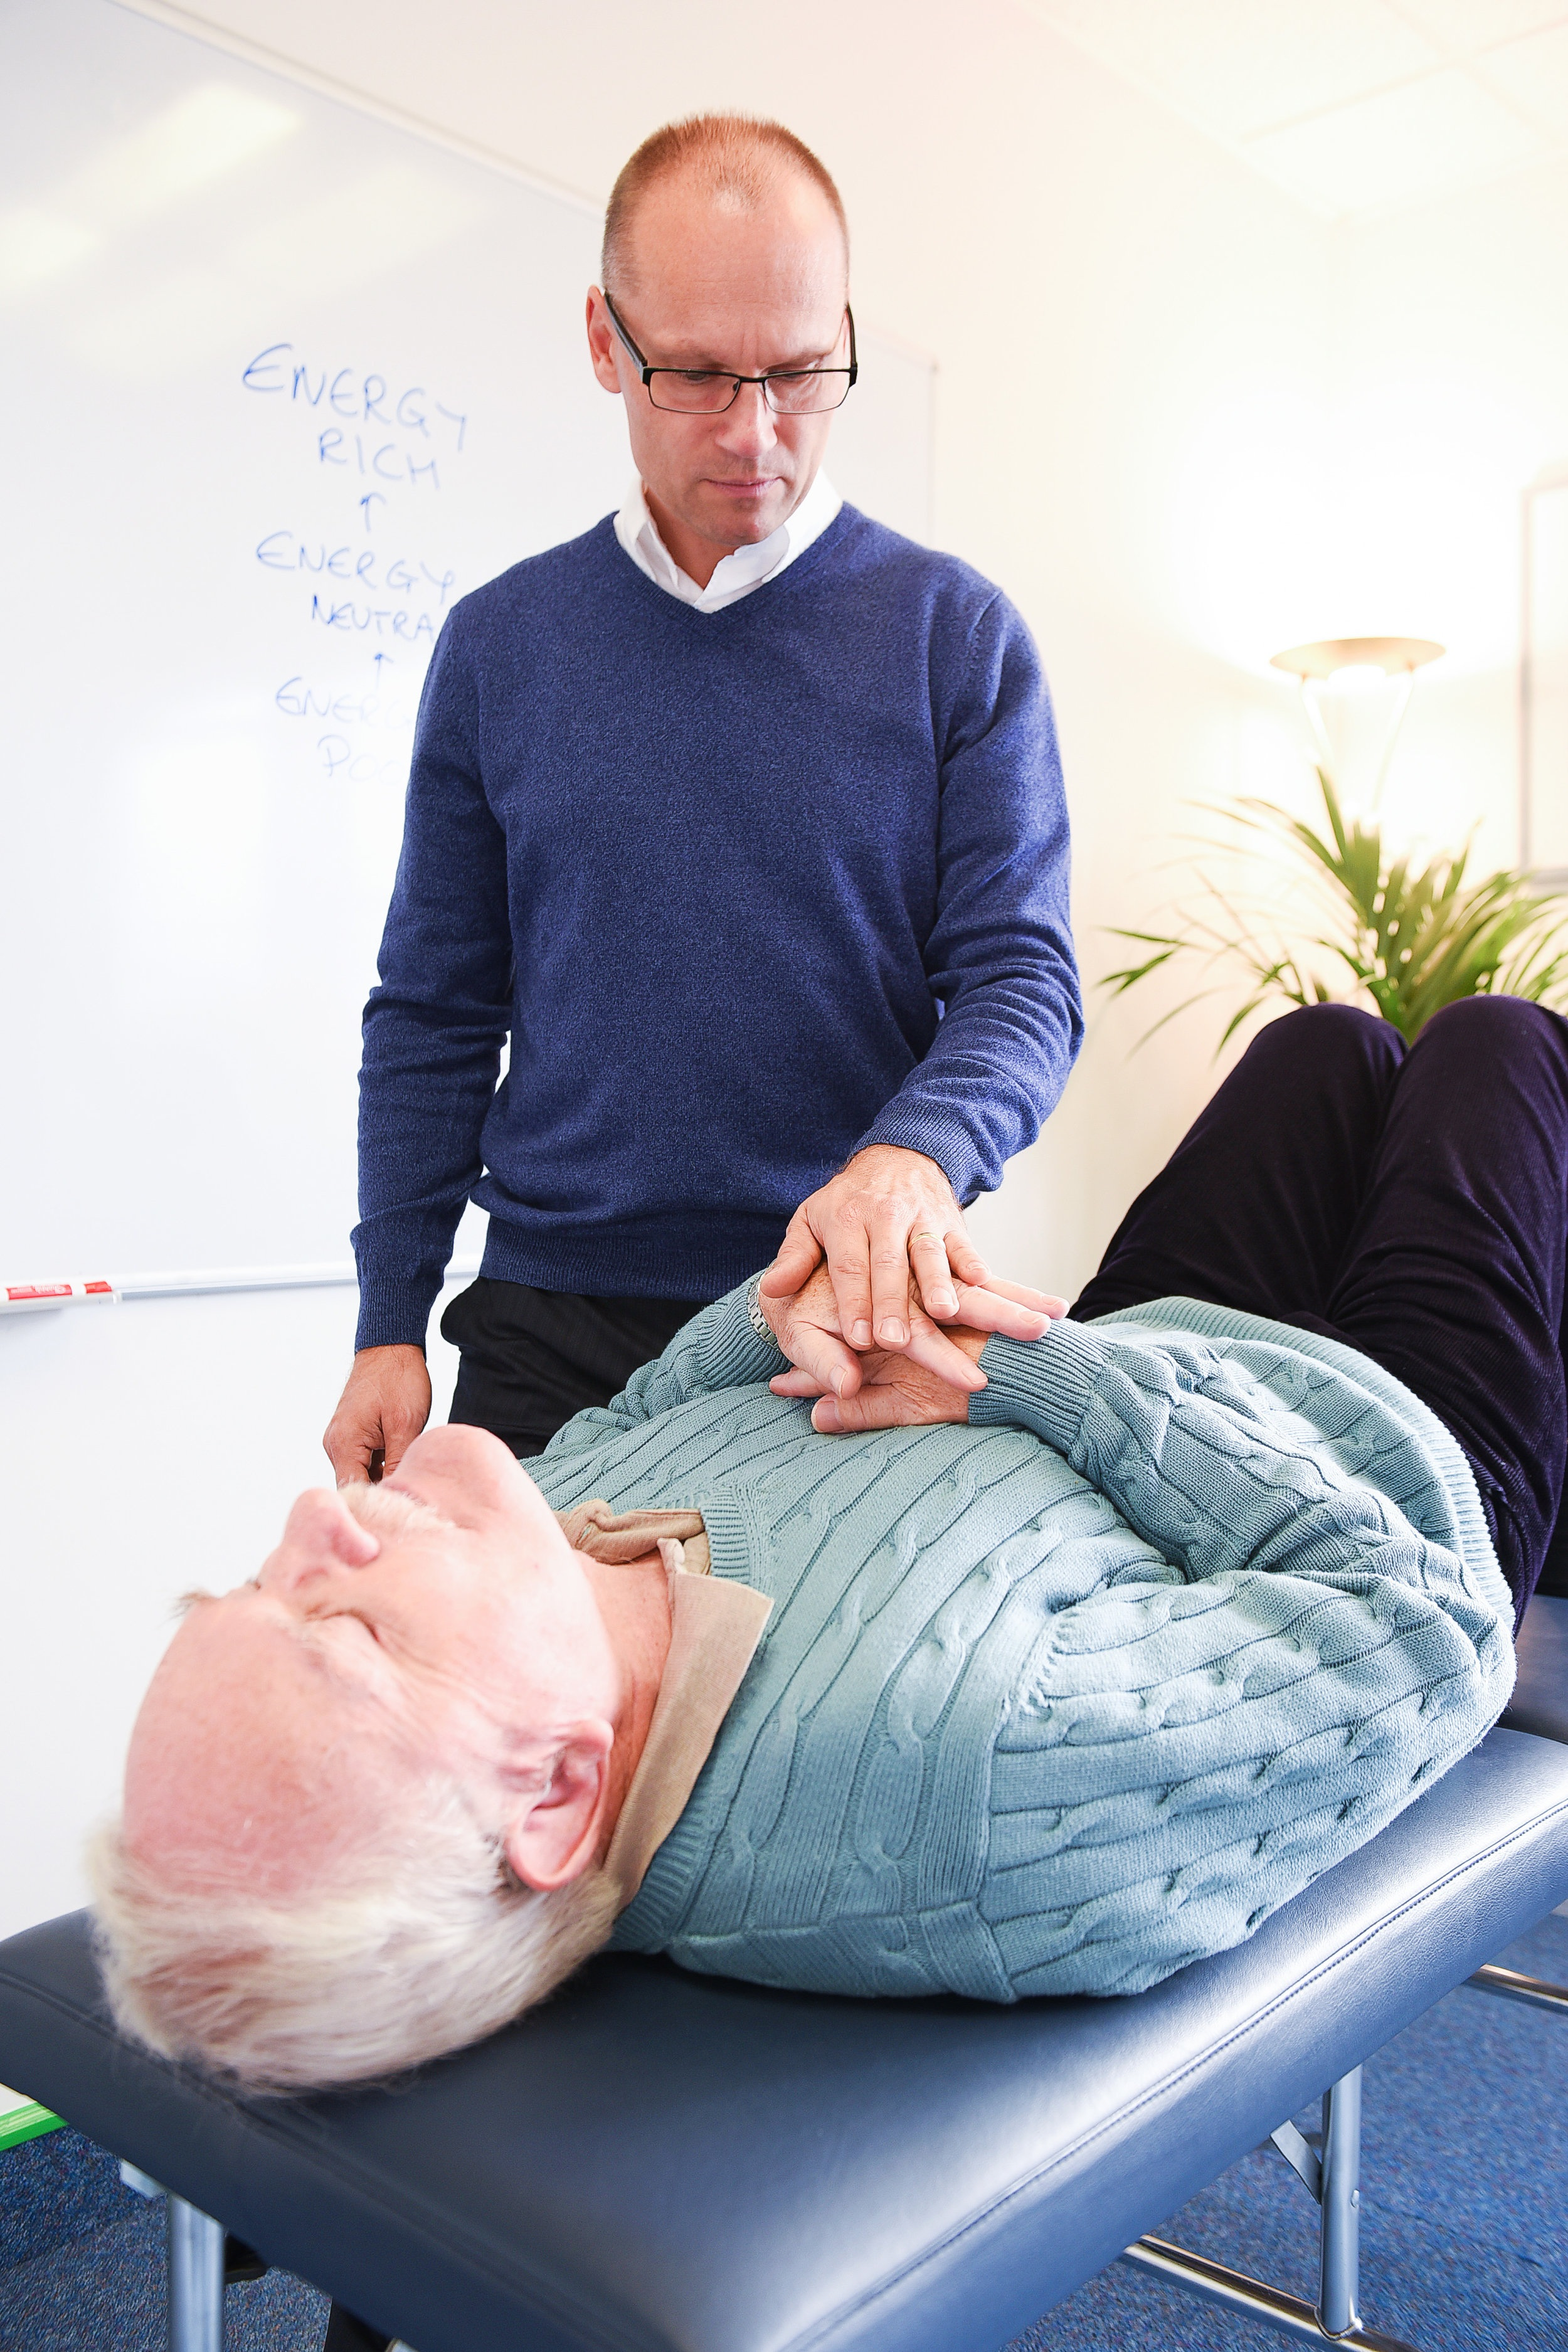 - We teach regular workshops where you can learn and study of Somato-Respiratory Integration, also developed by Dr Donald Epstein.Somato Respiratory Integration is a means of gaining the wisdom and secrets held within your body due to stored stress and tension, through the use of your own hands, breath and directed and/or spontaneous movement and focus. It is an unparalleled tool for healing and personal development.